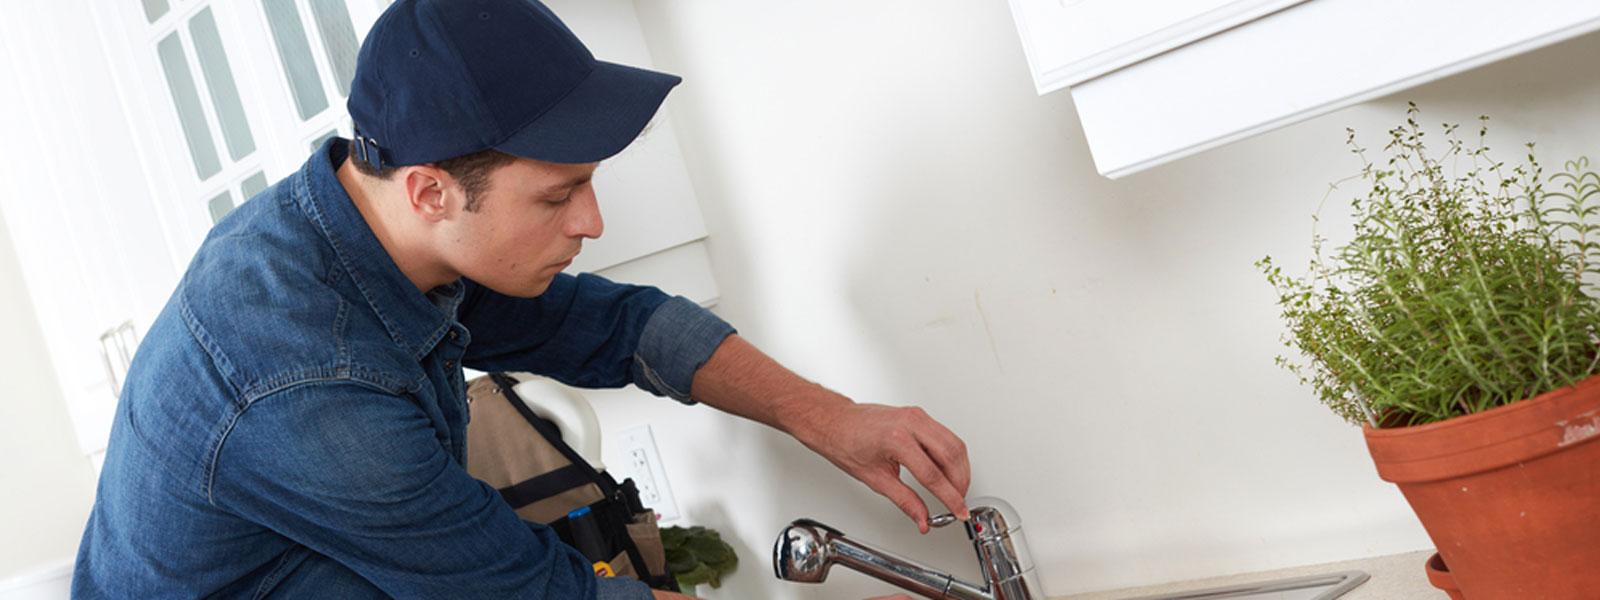 self-employed plumber fixing sink